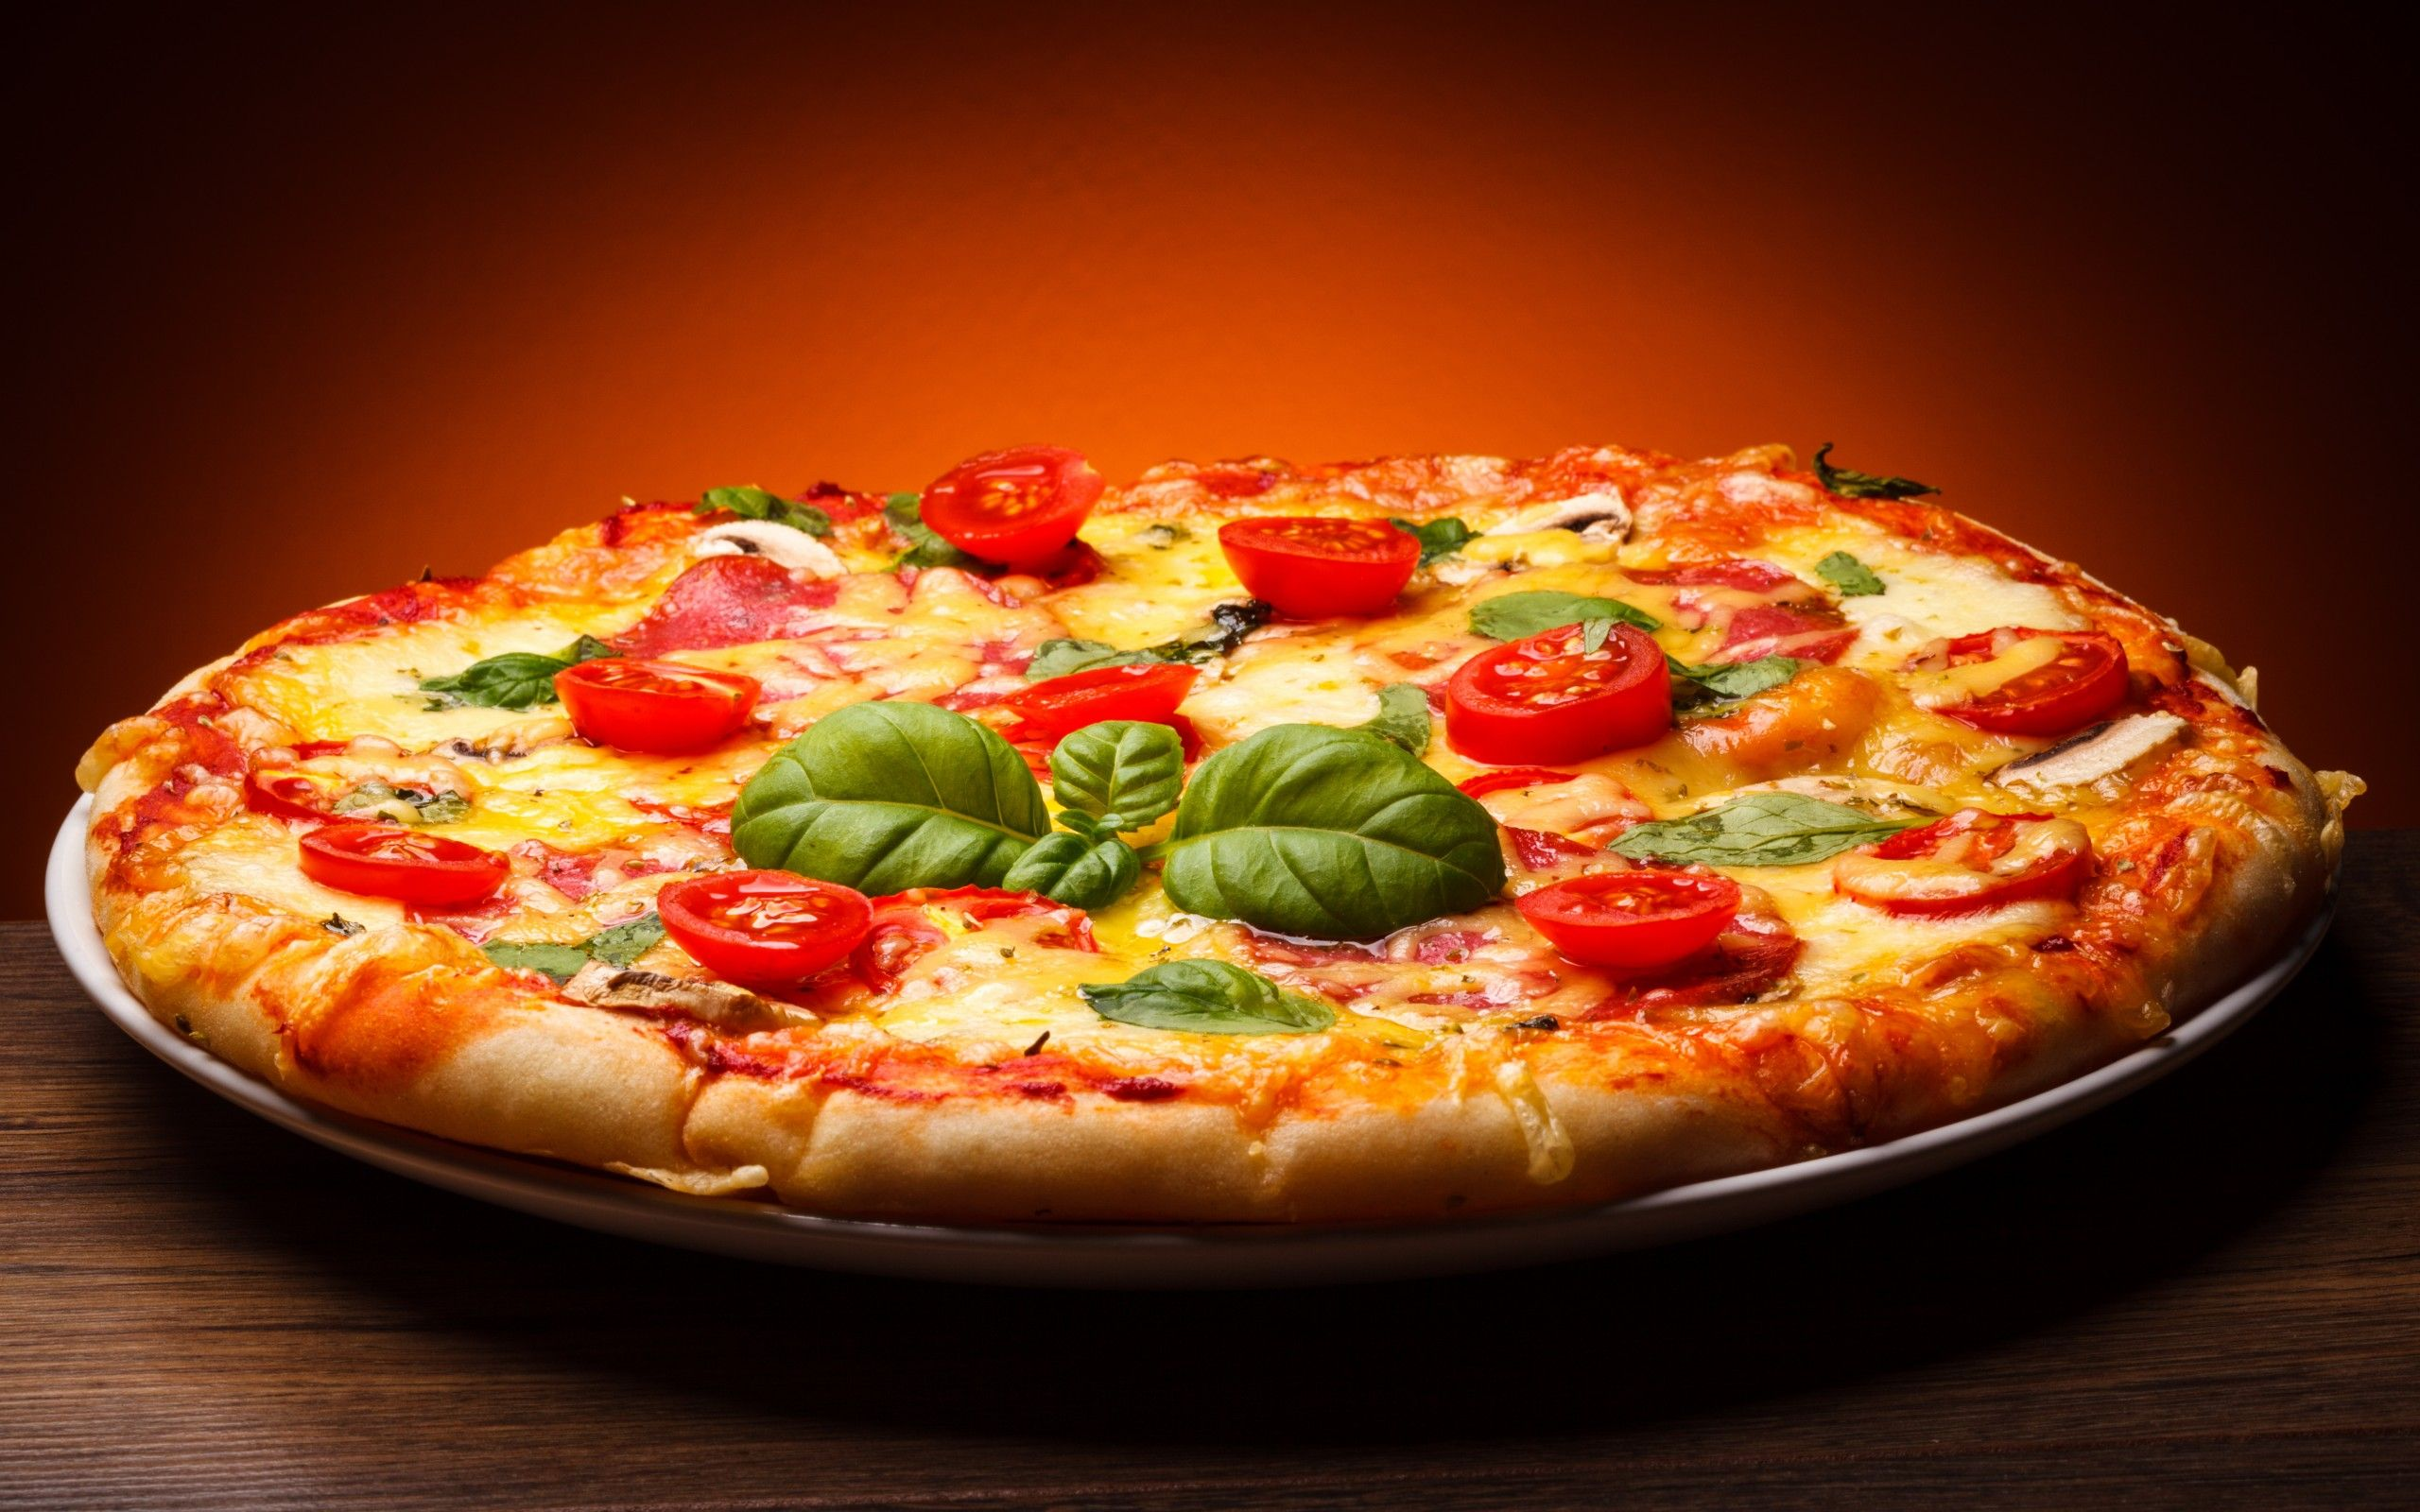 Pin by lubo lubo on Fruits Candy Drinks Good pizza Pizza 2560x1600